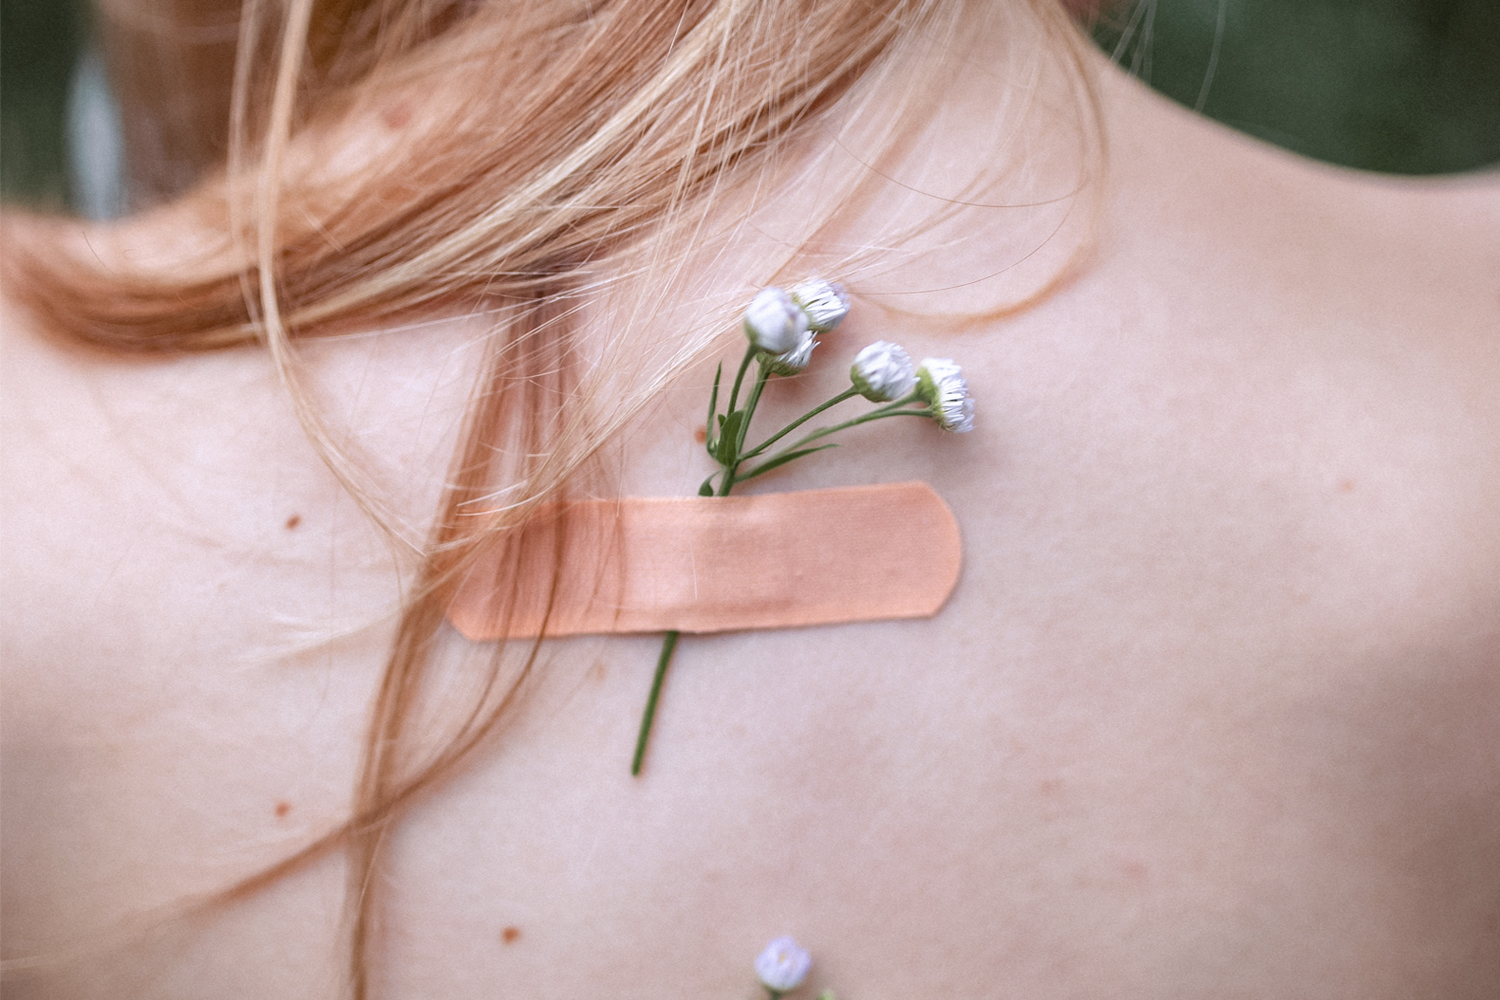 a band aid taped to womans back with a flower underneath it